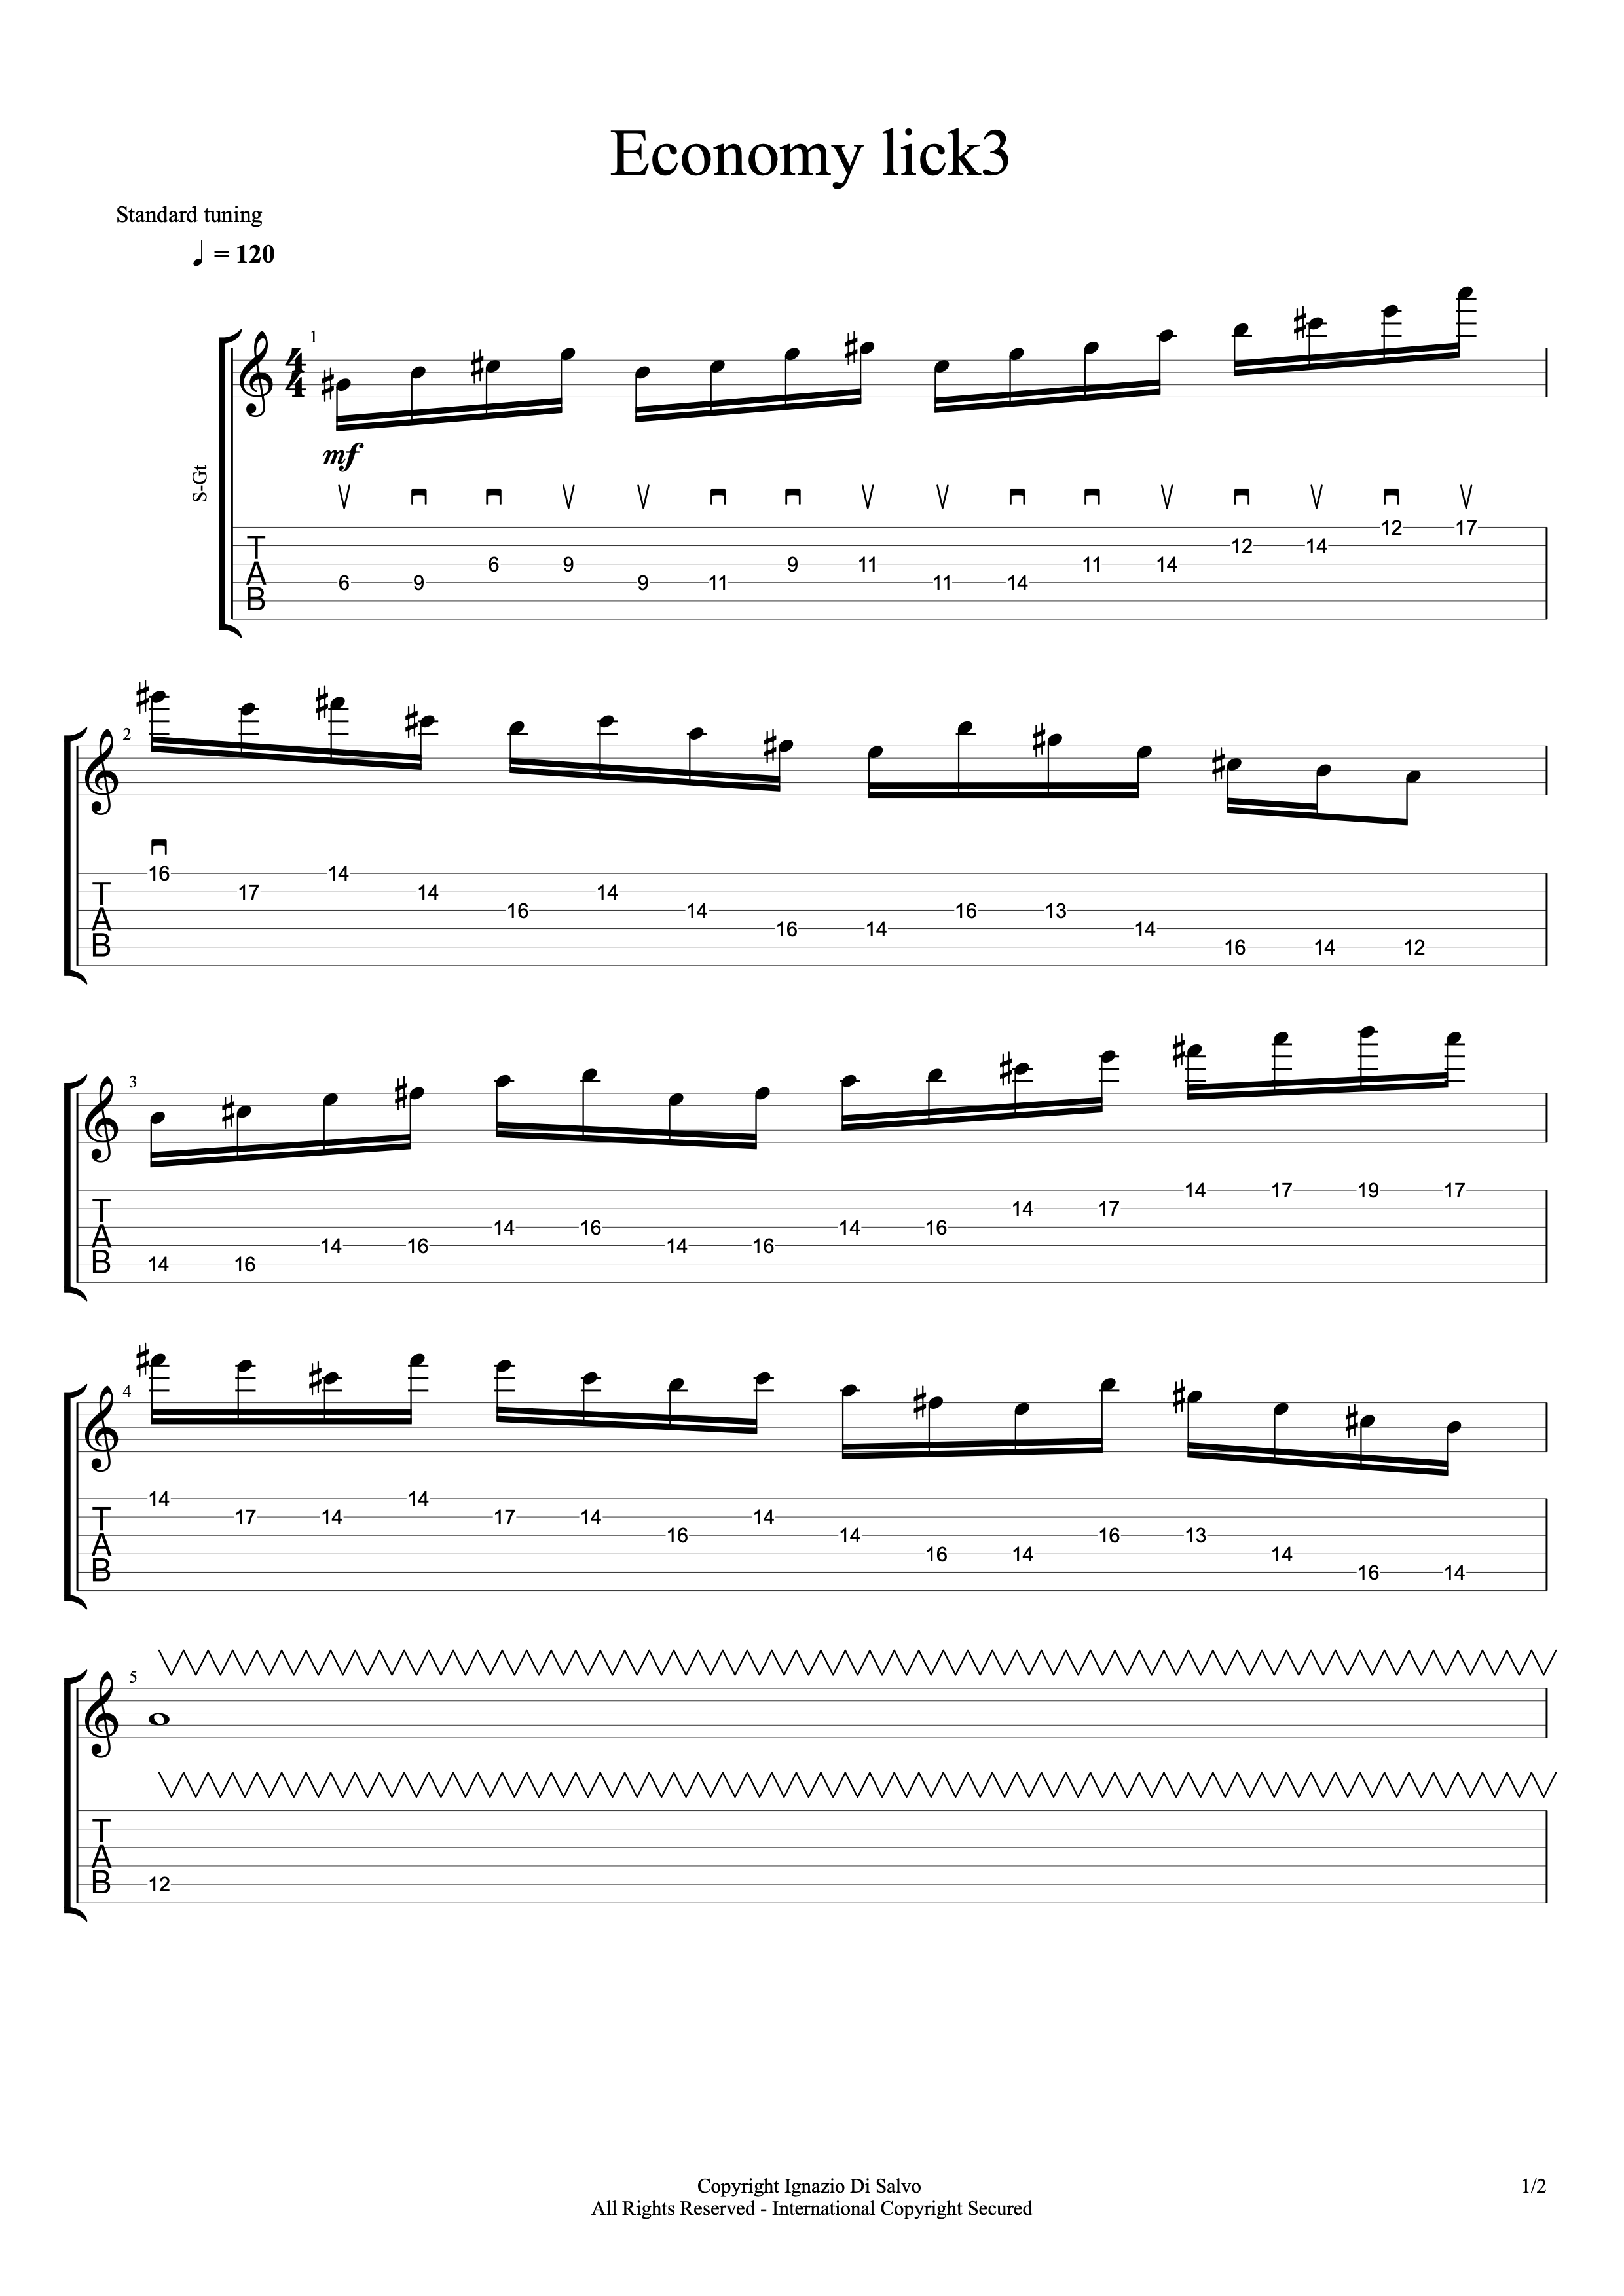 sweep picking lick3#1